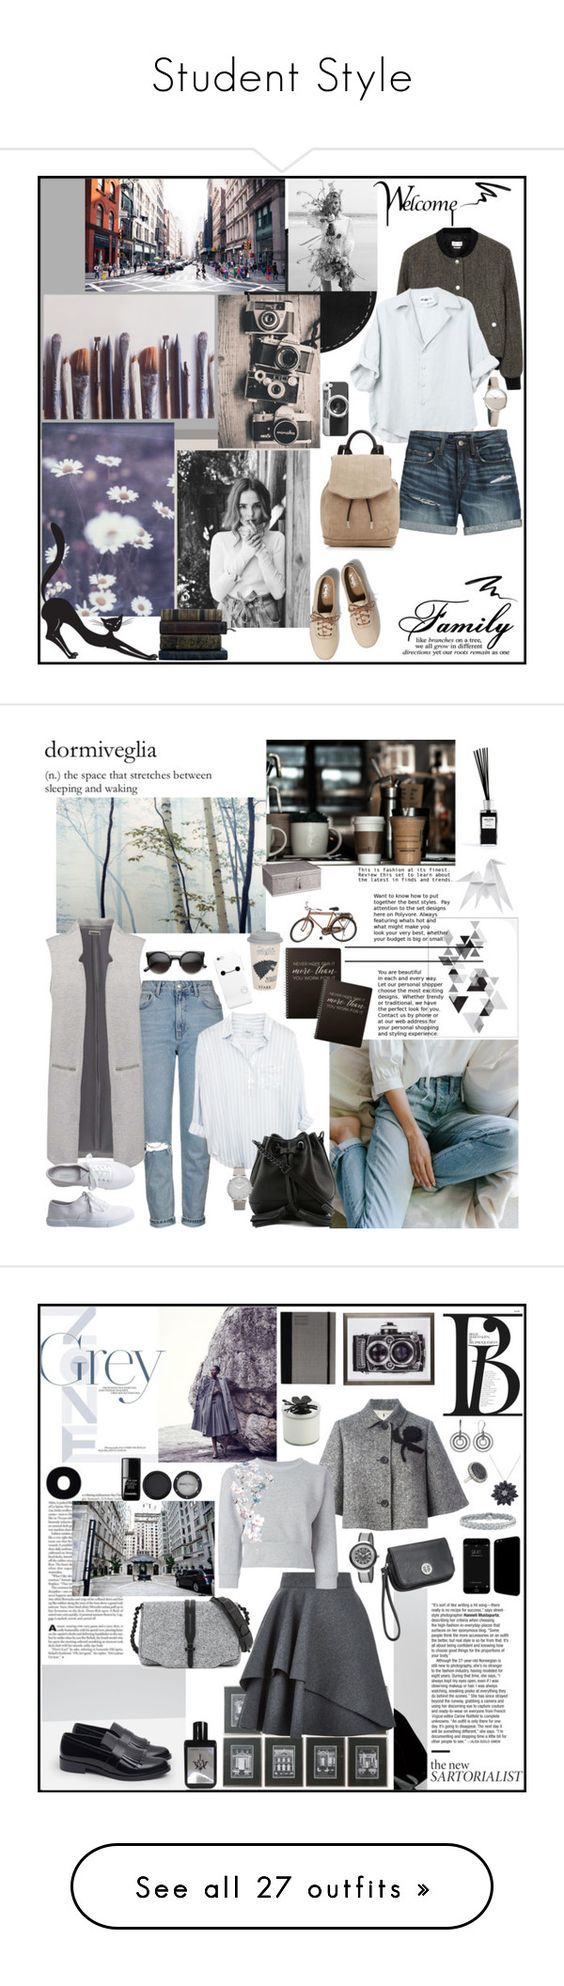 """Student Style"" by mariettamyan ❤ liked on Polyvore featuring Ella Doran, Étoile Isabel Marant, Canvas by Lands' End, Keds, rag & bone, Casetify, Calvin Klein, Eyeko, Topshop and Aéropostale"